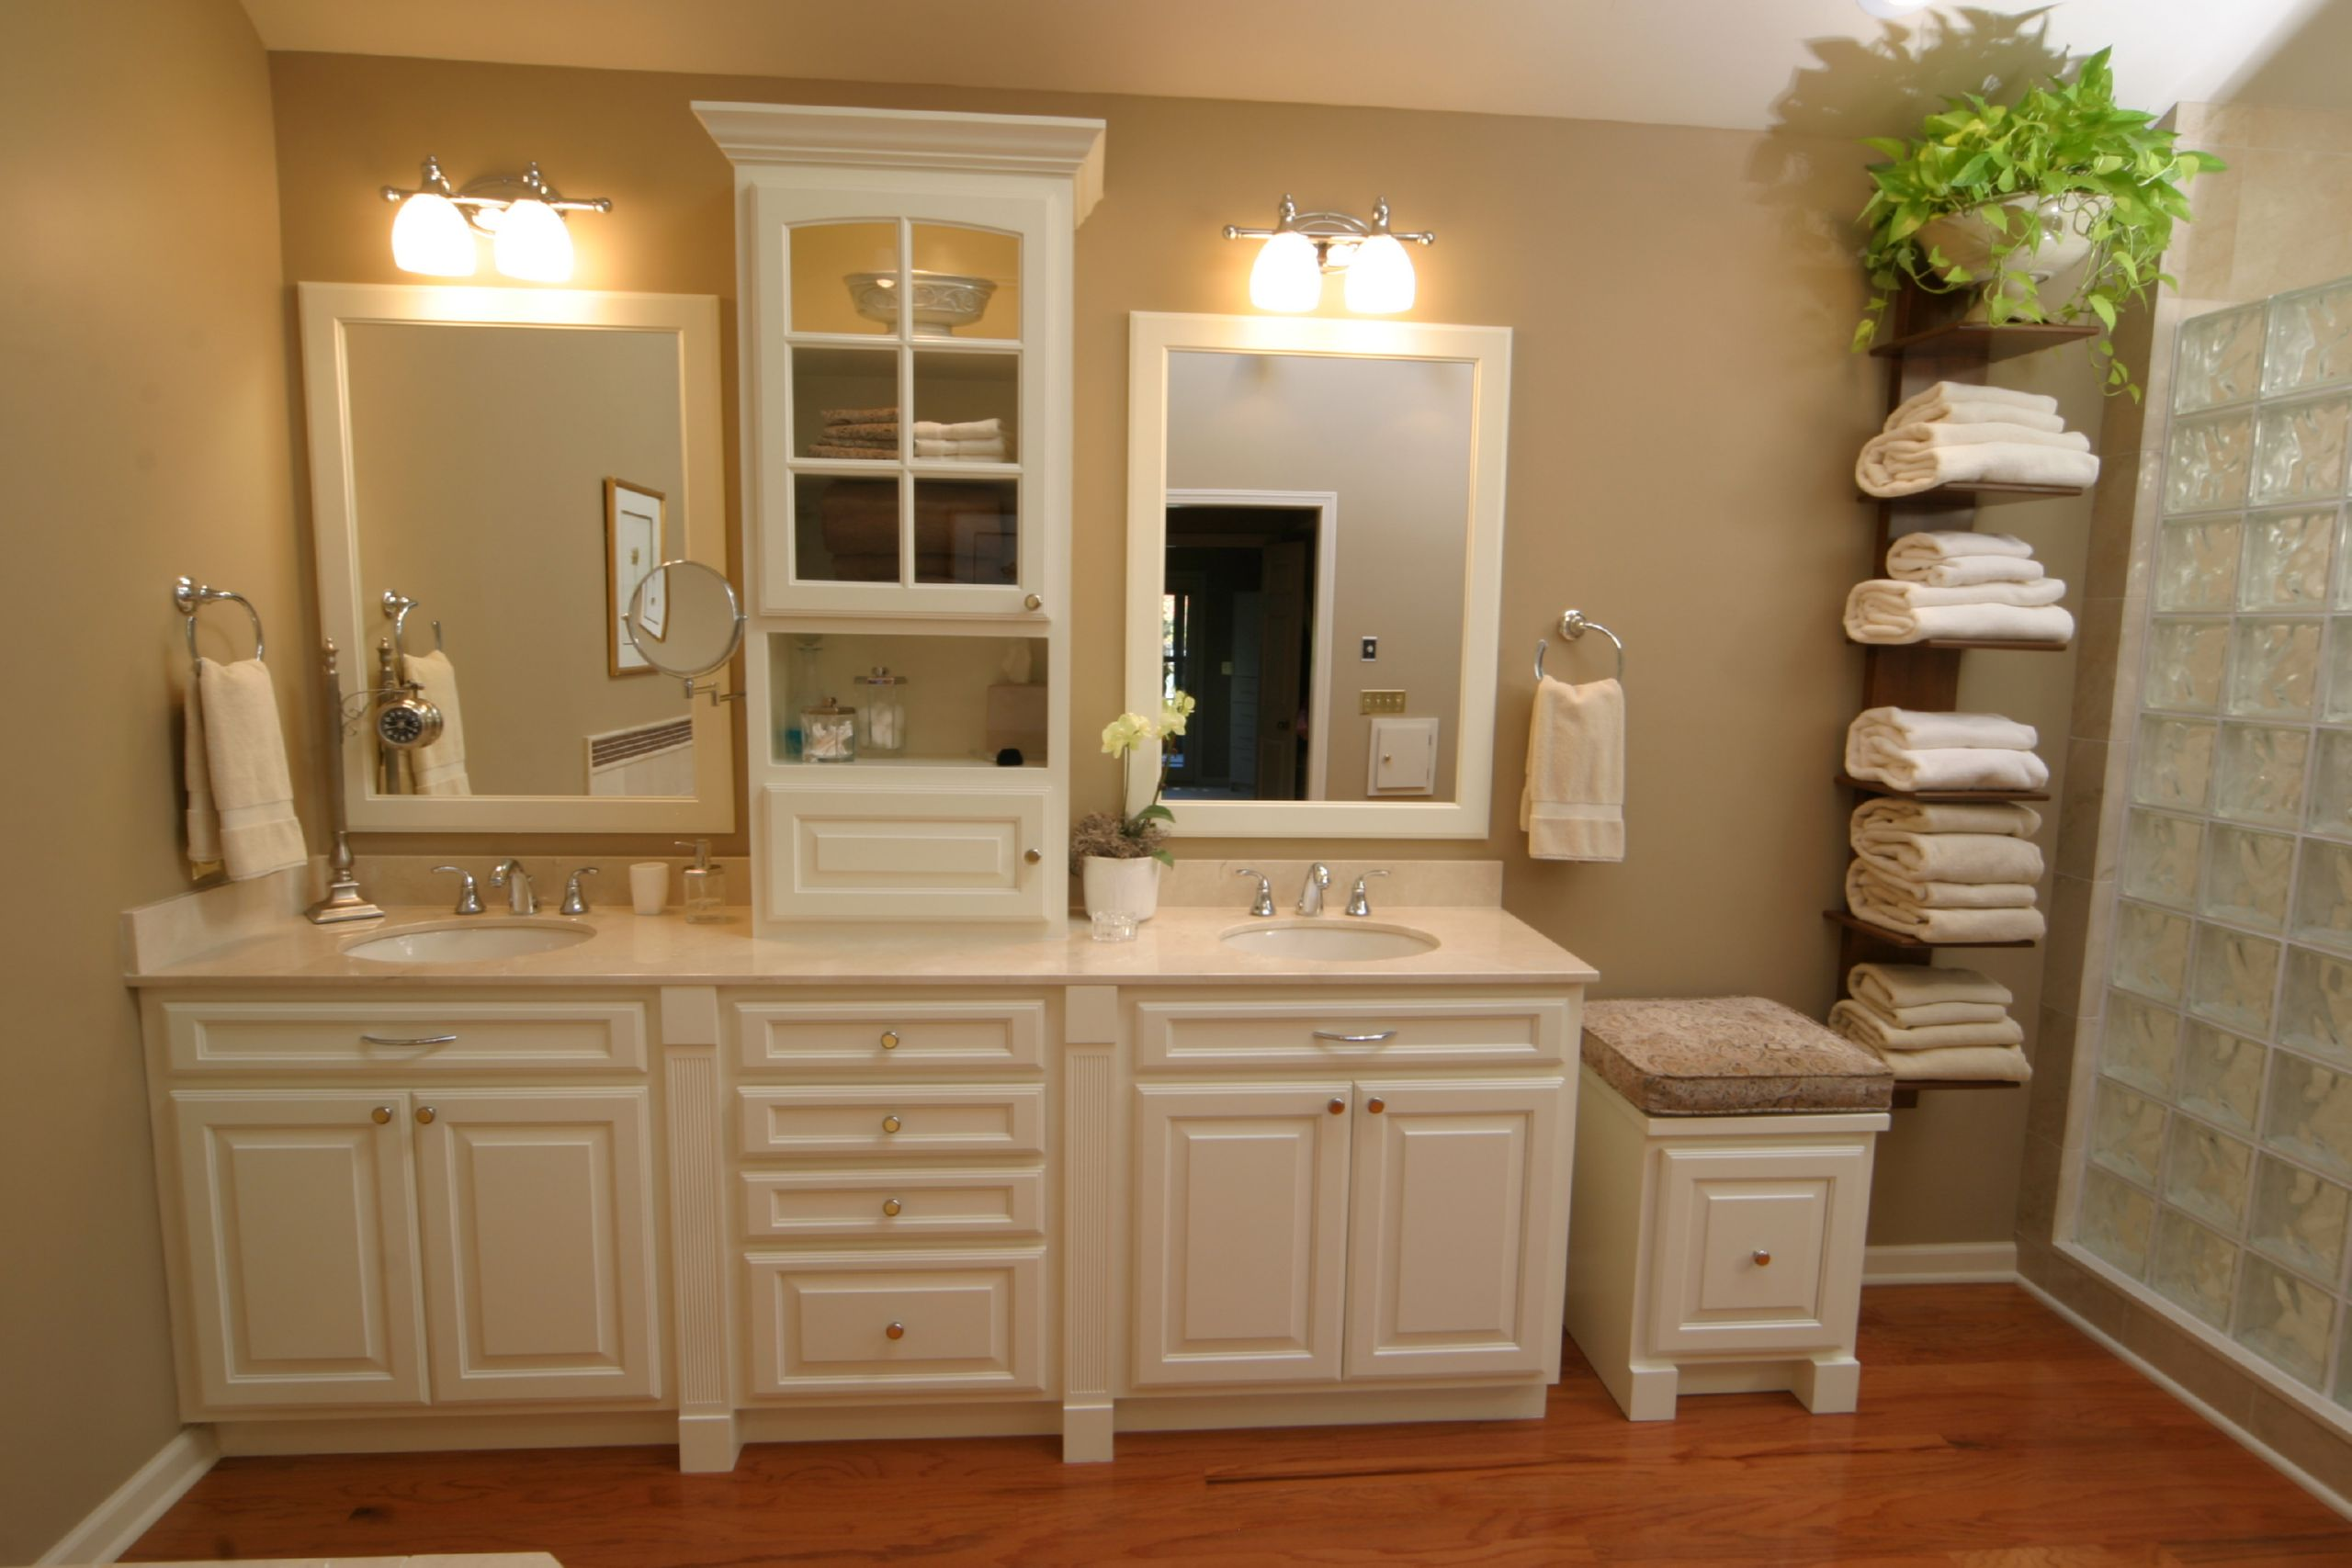 Bathroom remodeling tips njw construction for Bathroom remodel photos